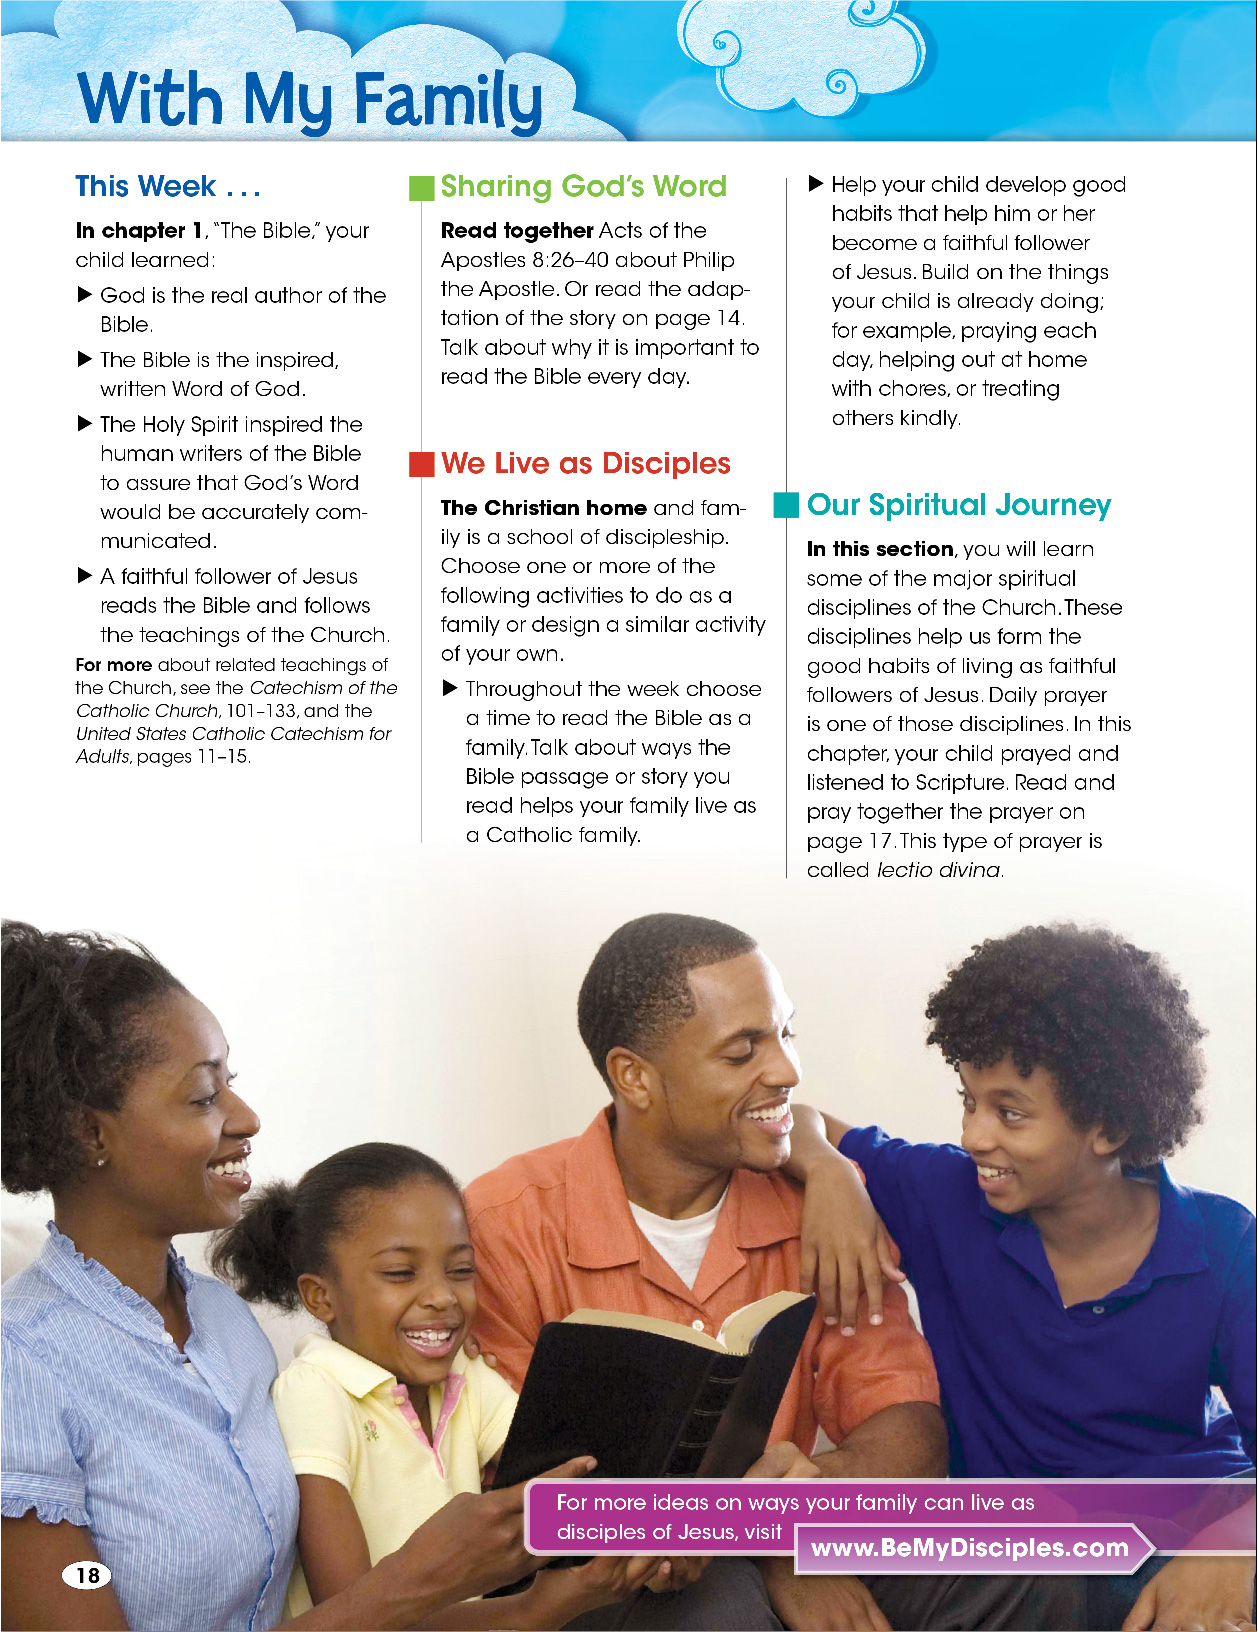 Sample page about family from Be My Disciples